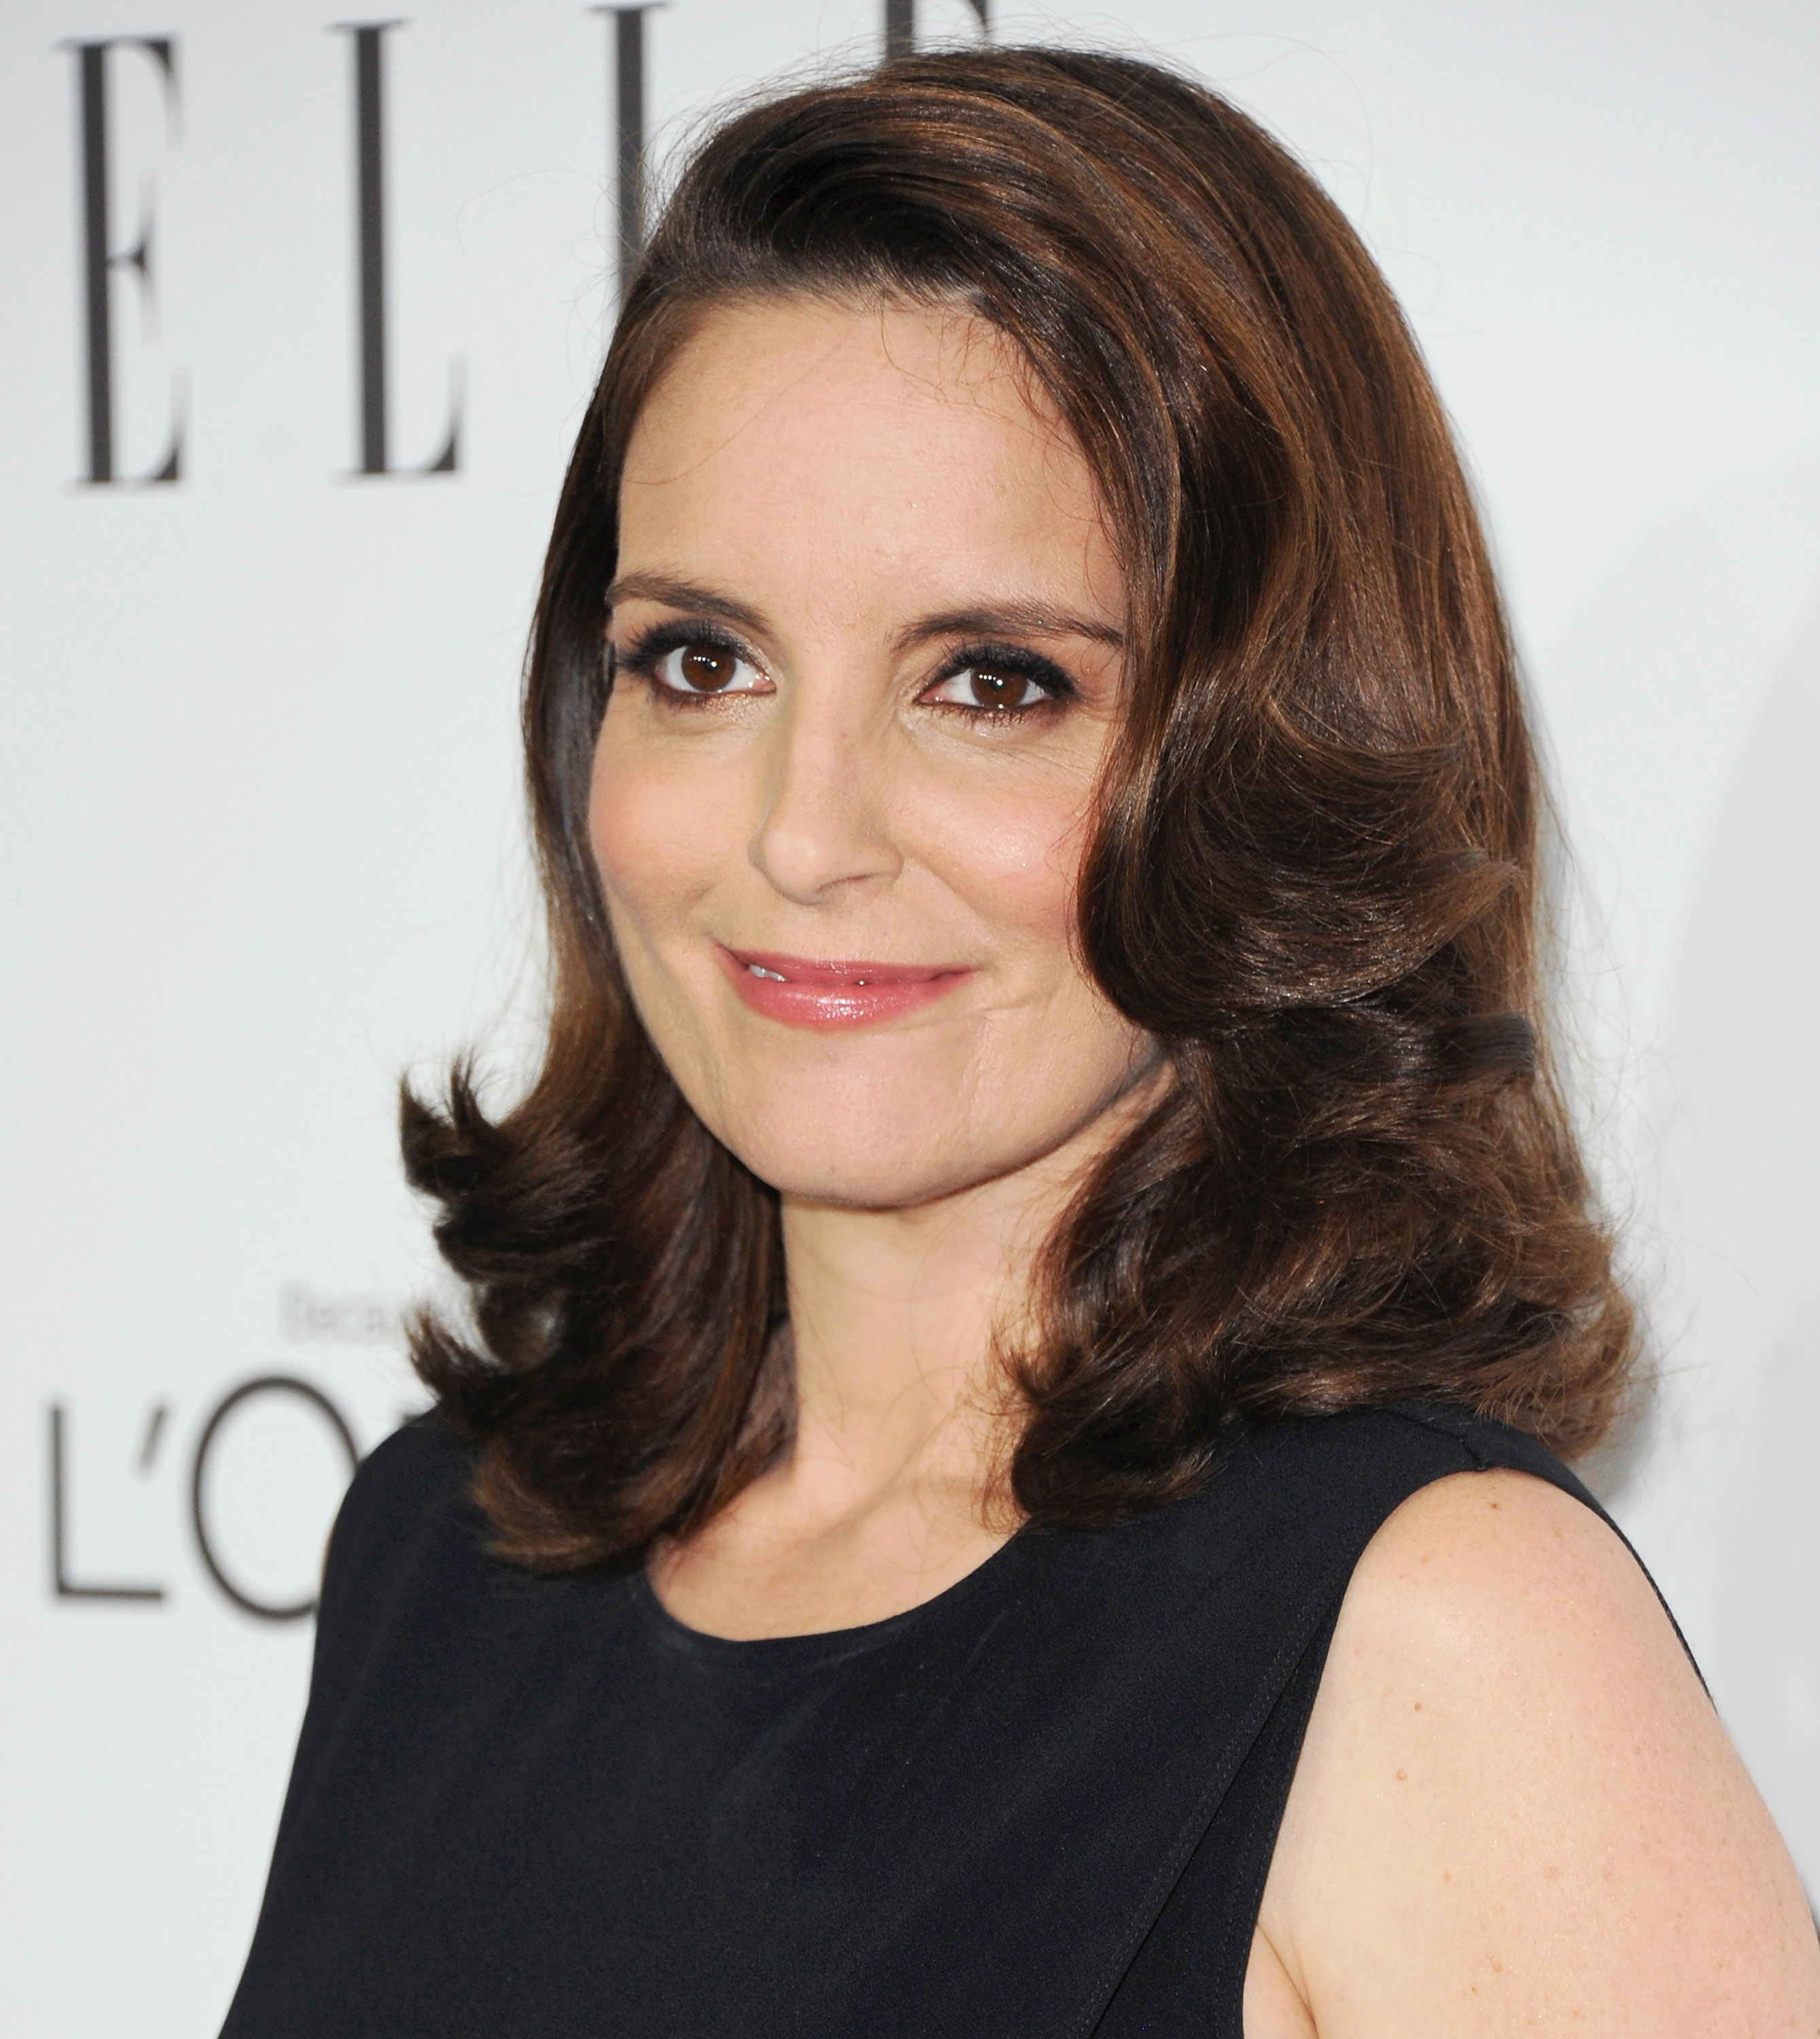 Actress Tina Fey arrives at the 21st Annual ELLE Women In Hollywood Awards on Oct. 20, 2014 in Beverly Hills.